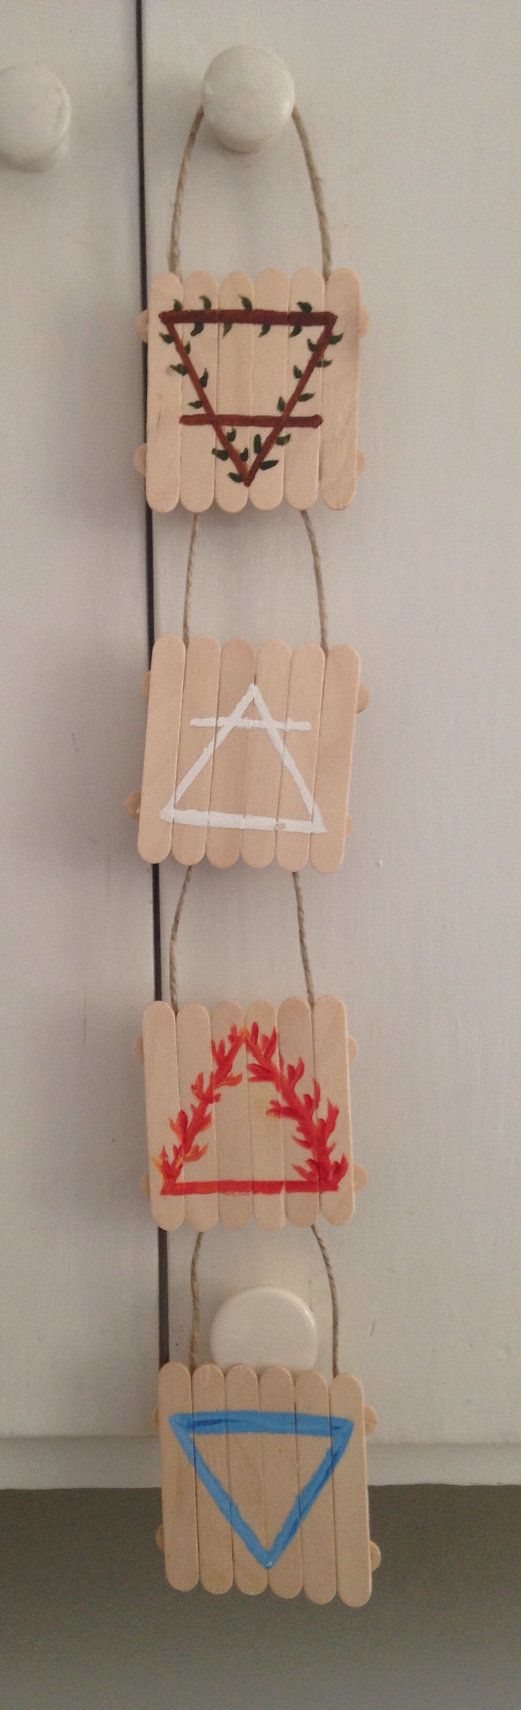 4 elements earth air fire water witchy pagan wiccan home decor wall hanging…